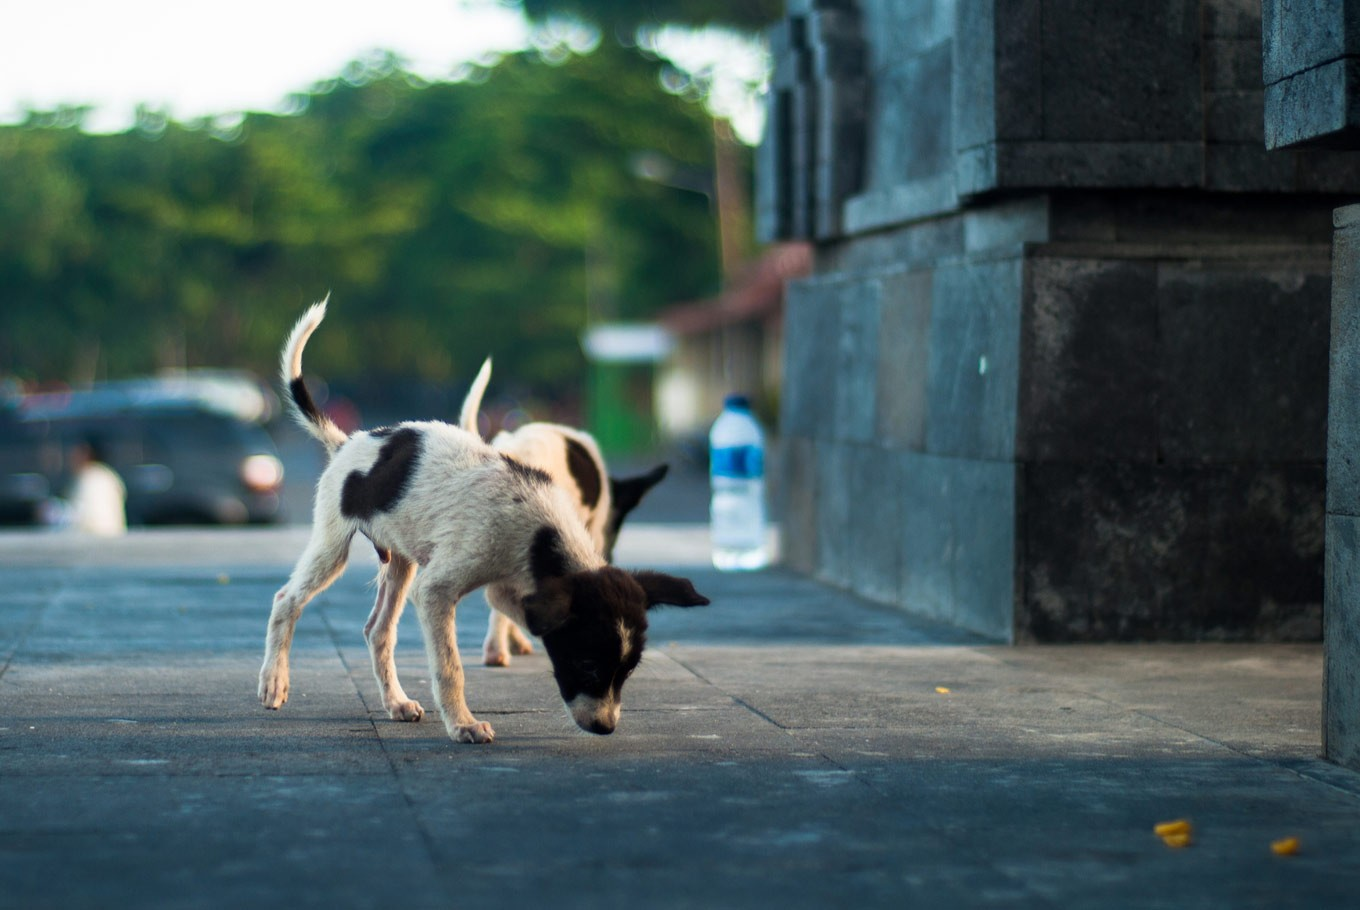 History of Bali dogs